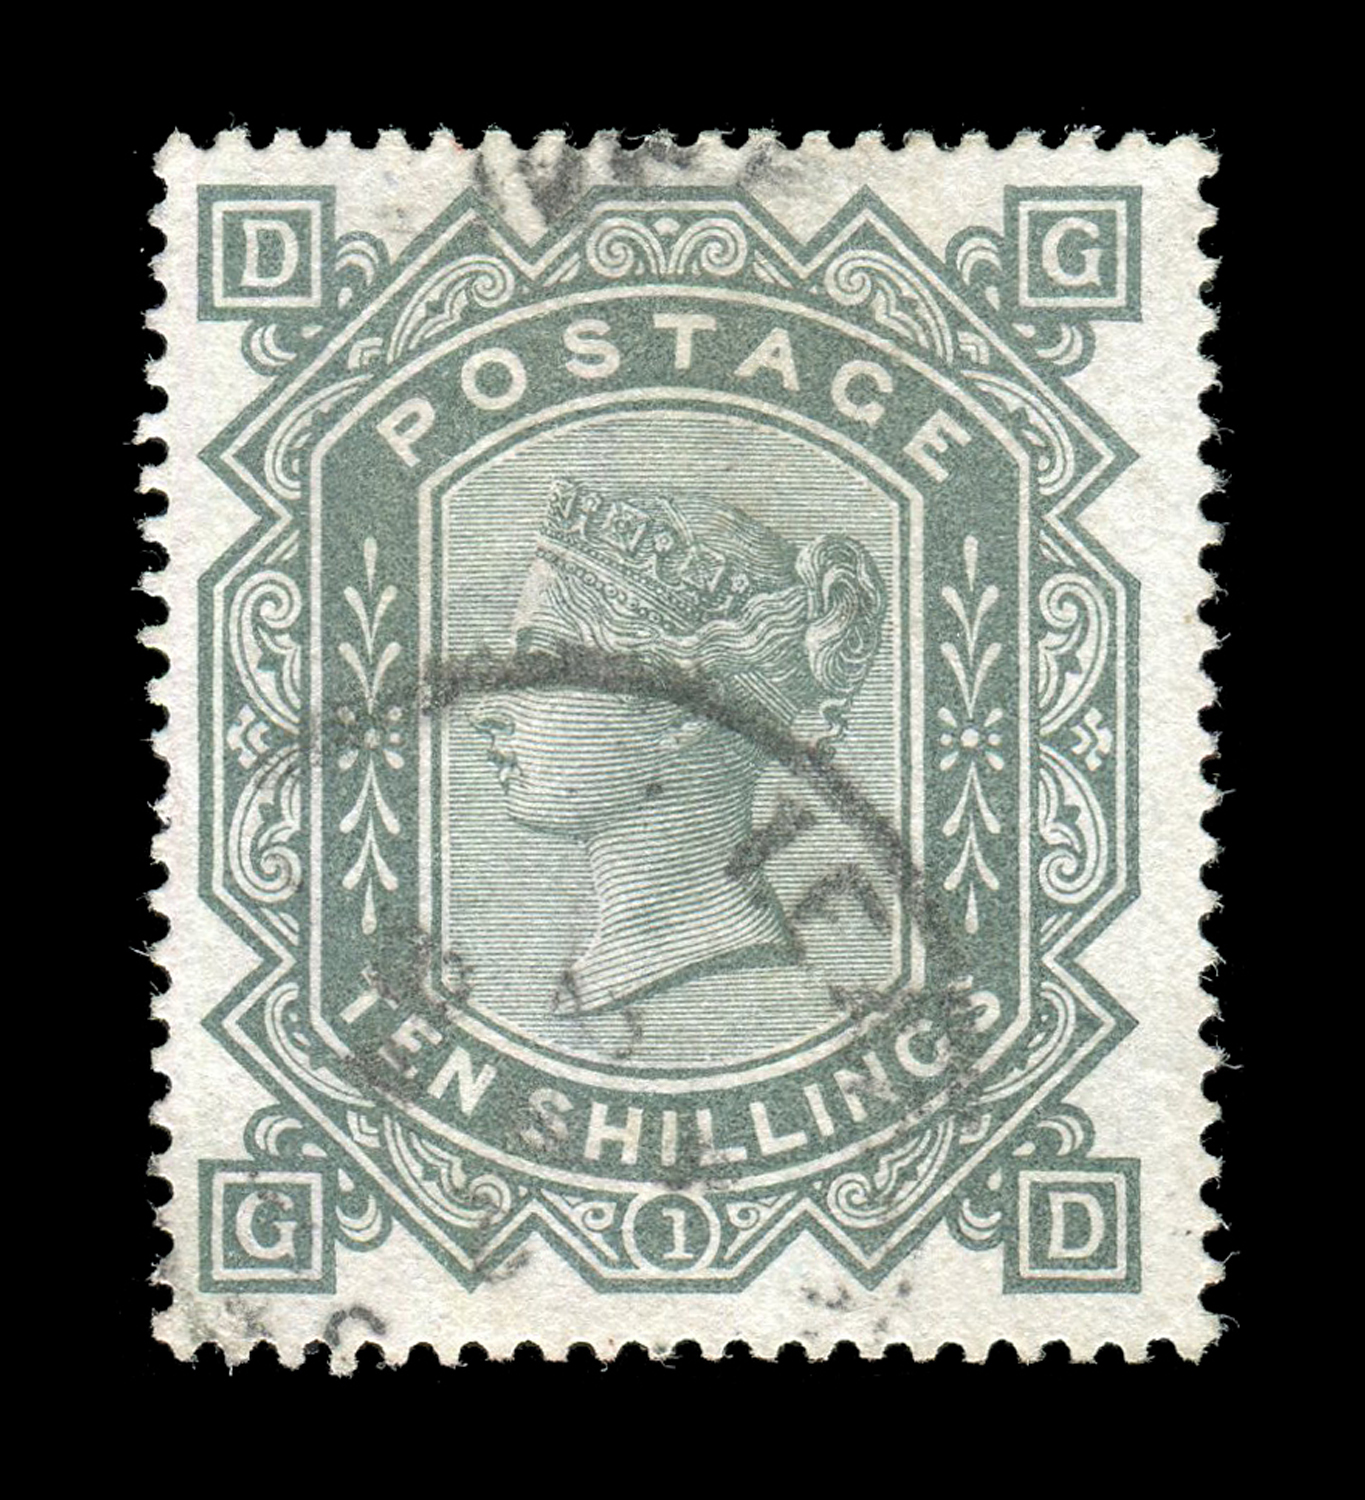 Lot 3002 - A Great Britain 1883 10 shillings greenish grey stamp, anchor watermark (SG 135) used.Buyer's